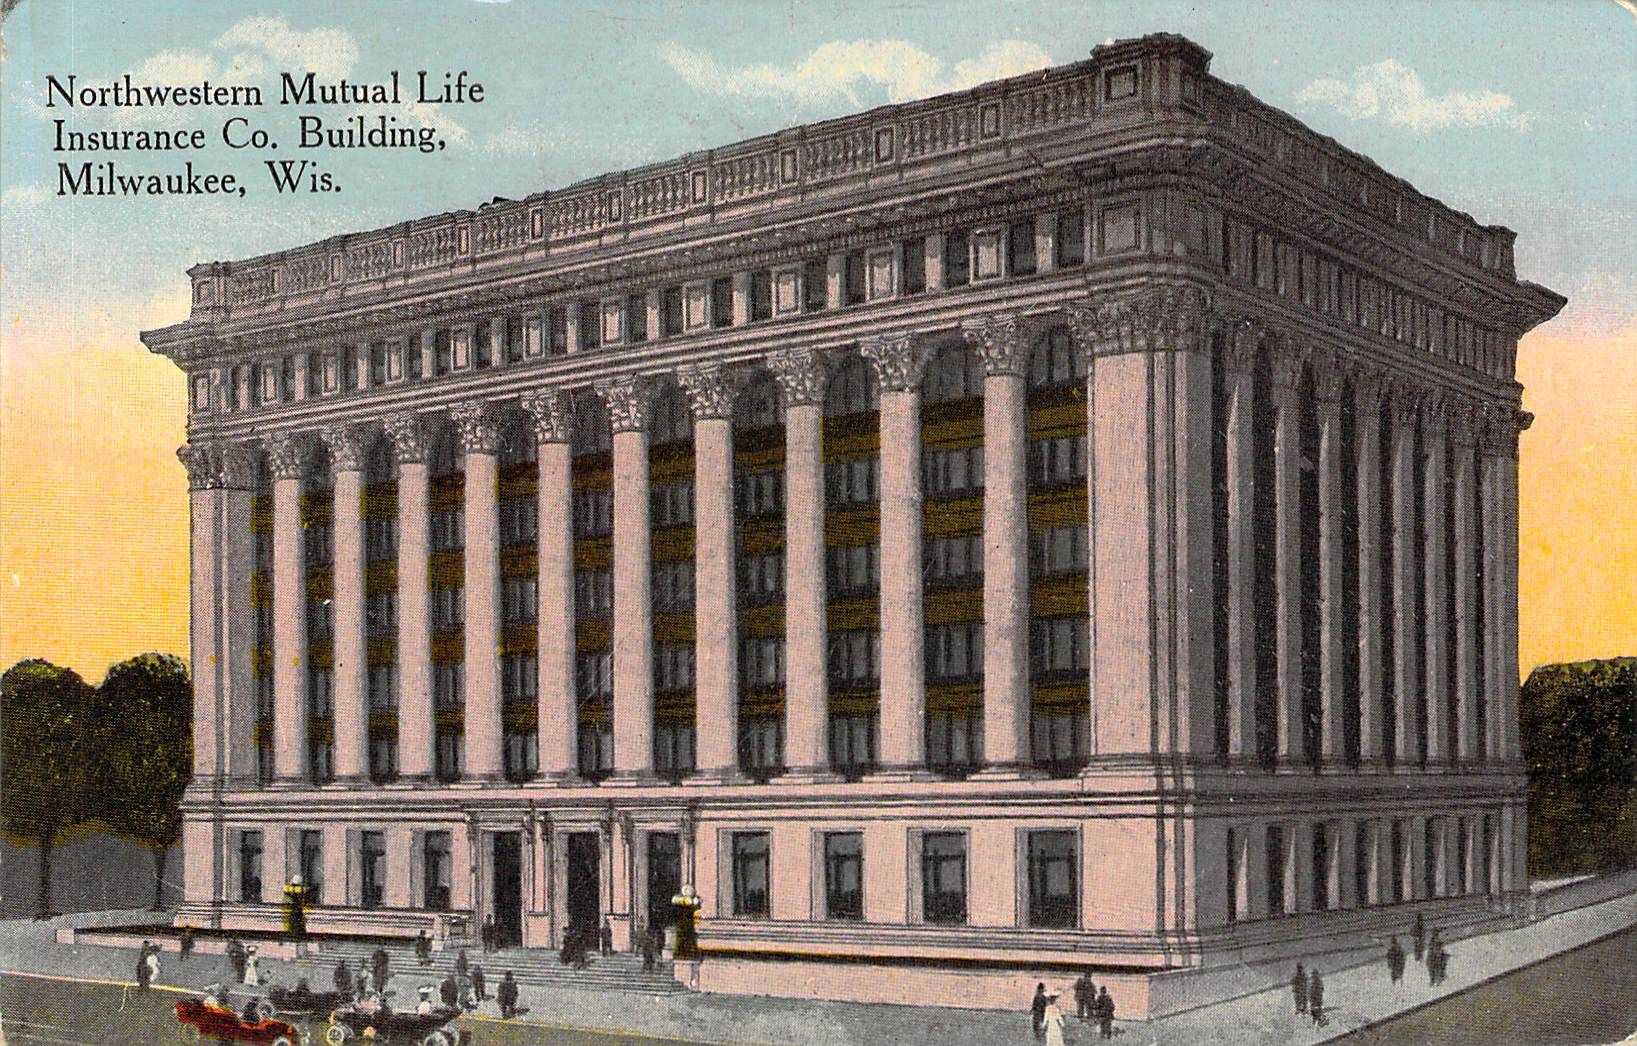 Northwestern Mutual Life Insurance Quote Northwestern Mutual Life Insurance Company Building Milwaukee Wi